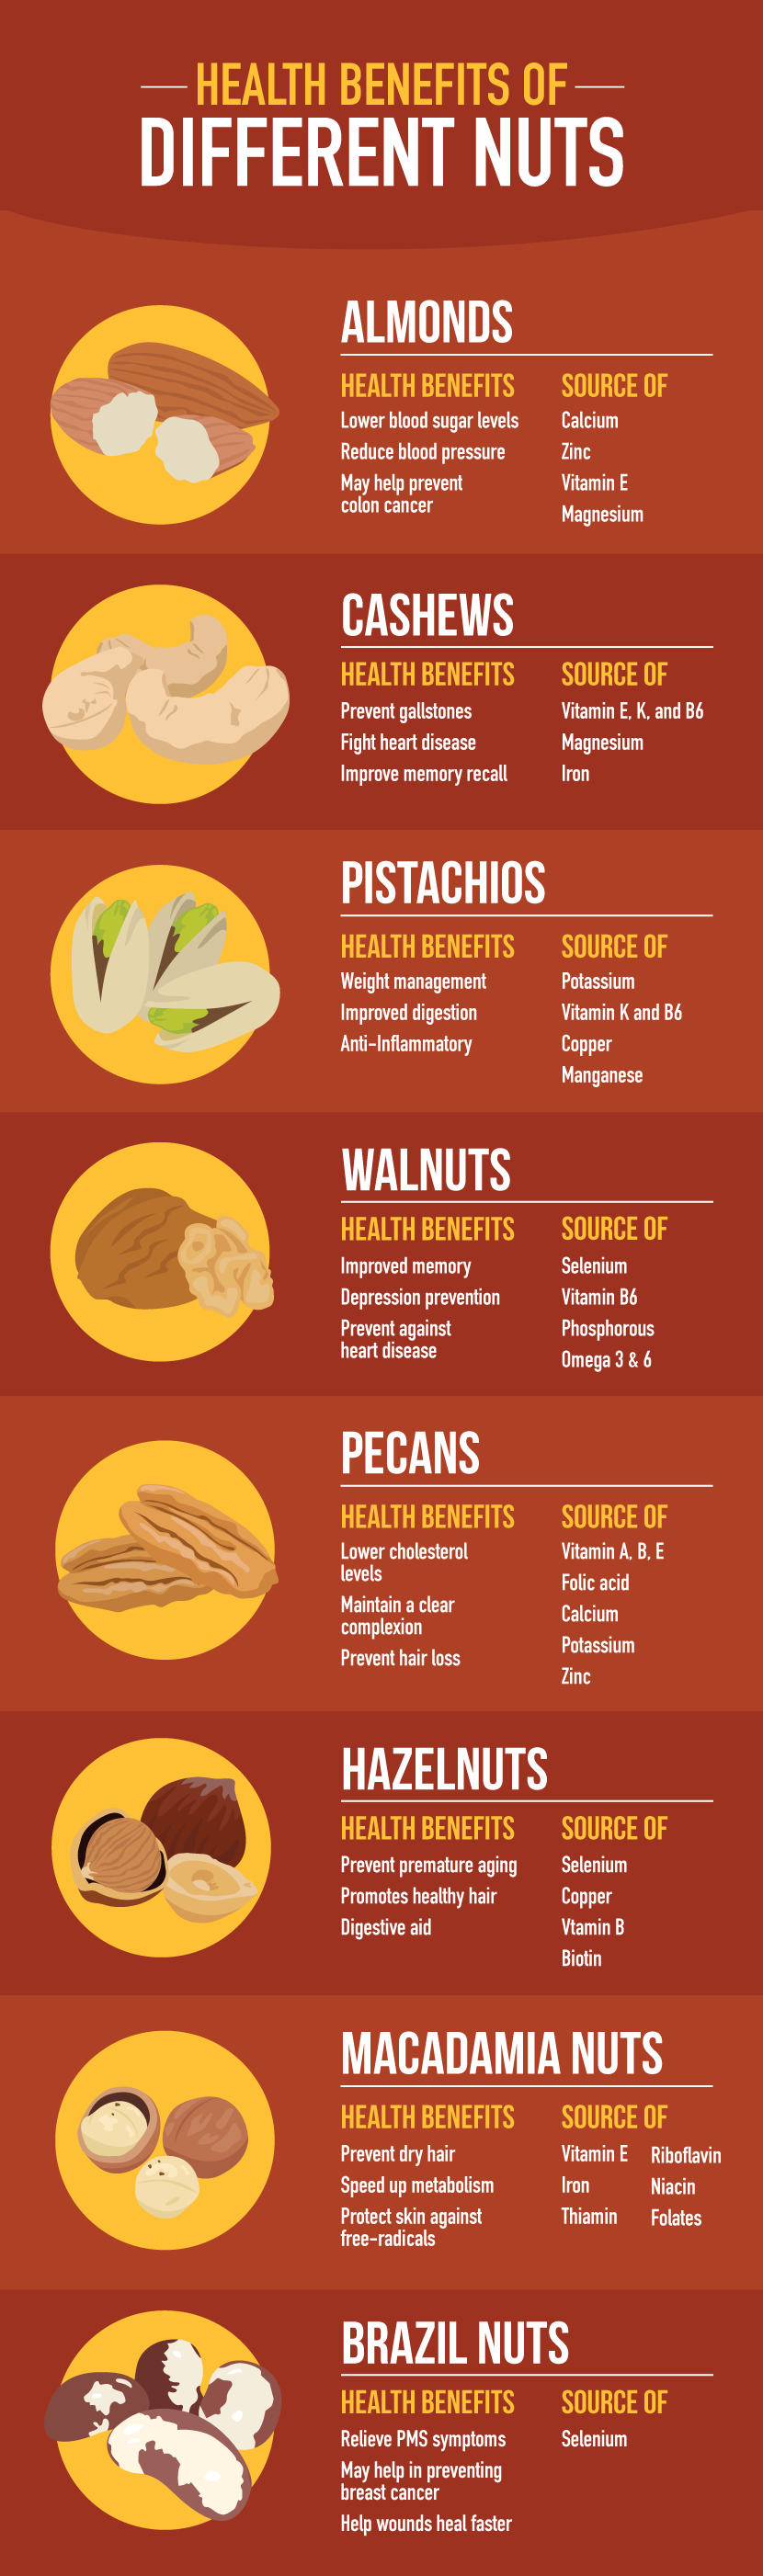 Here's What The Nuts You Snack On Actually Do For Your Body